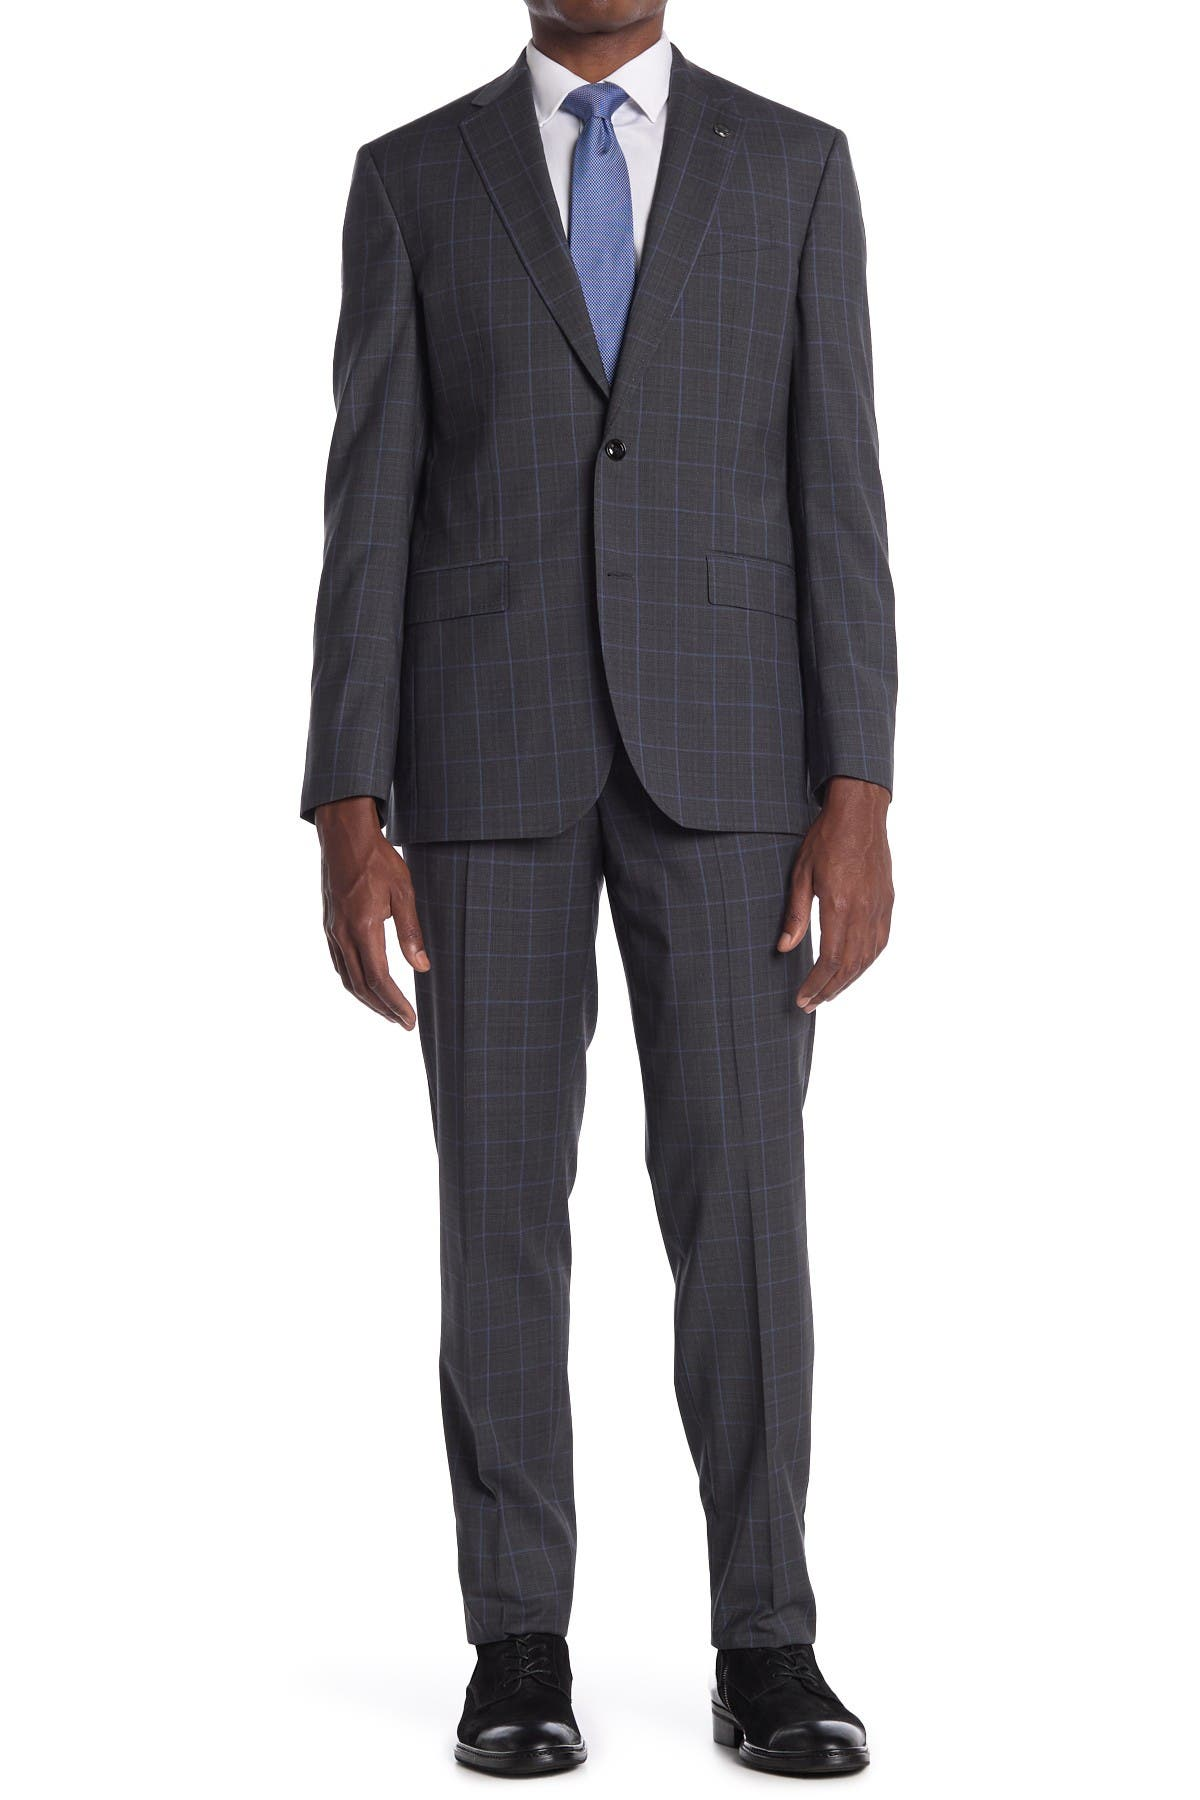 Image of Ted Baker London Jay Gray Plaid Two Button Notch Lapel Trim Fit Suit